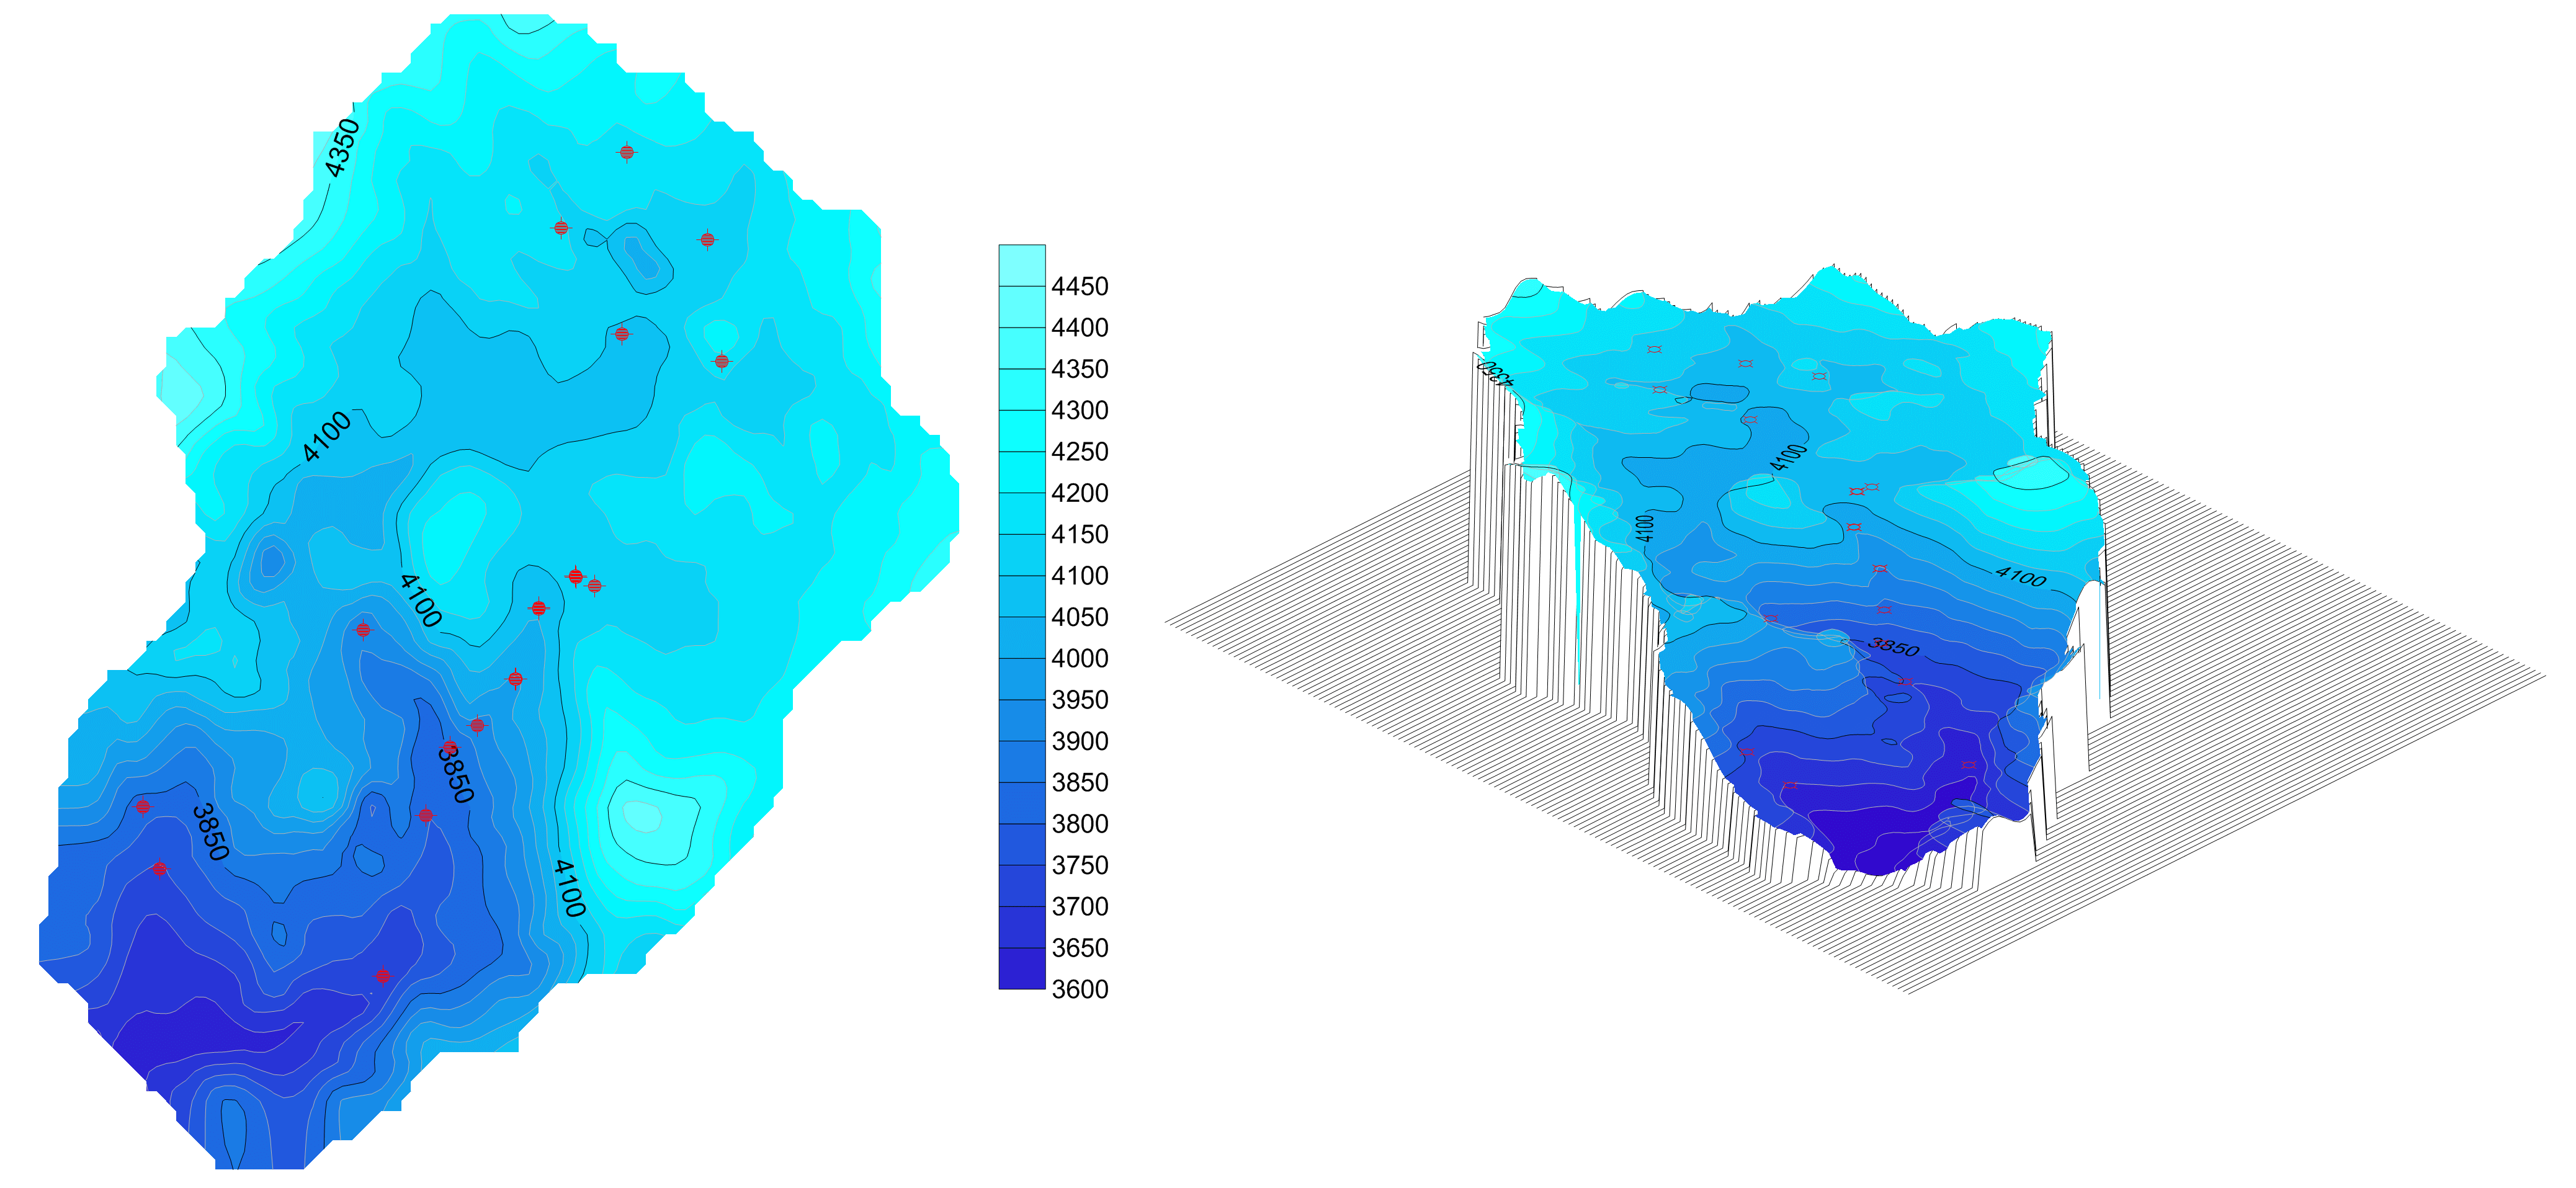 Surfer modeling and contouring mapping software: Groundwater elevation map draped over land surface map